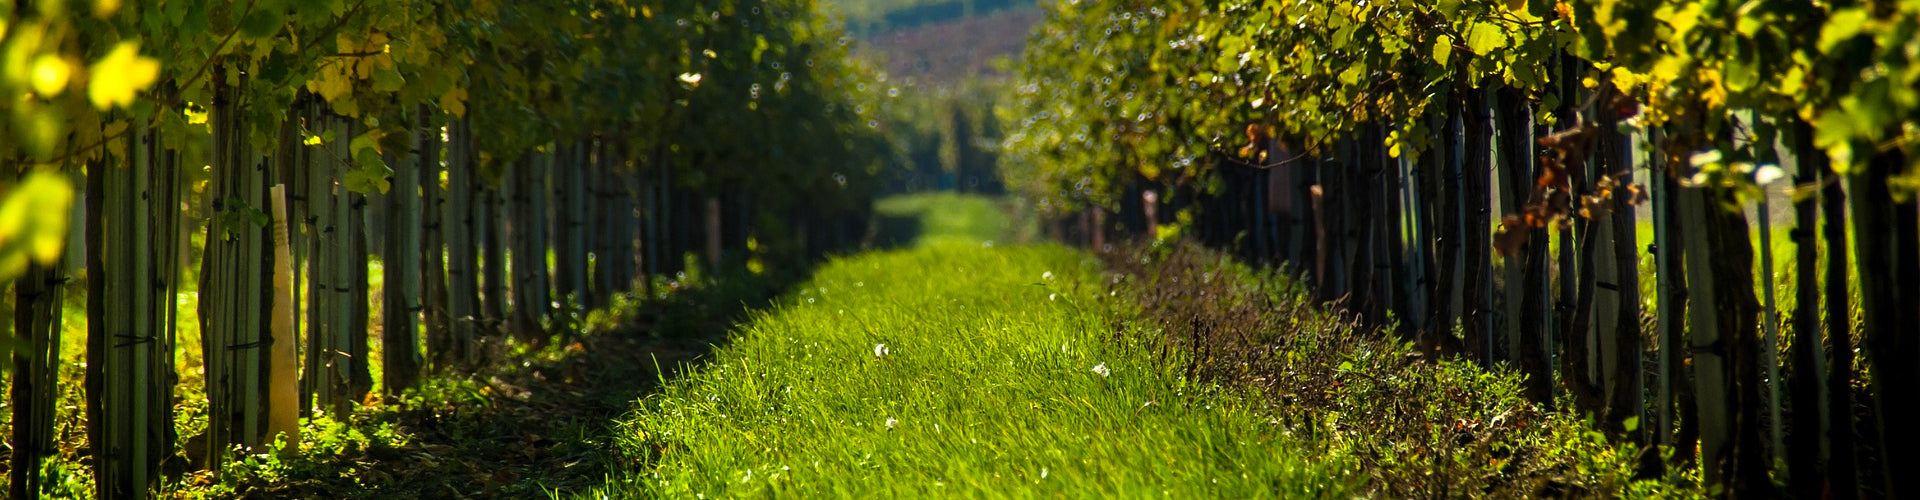 Organic Vineyard with grass crop cover